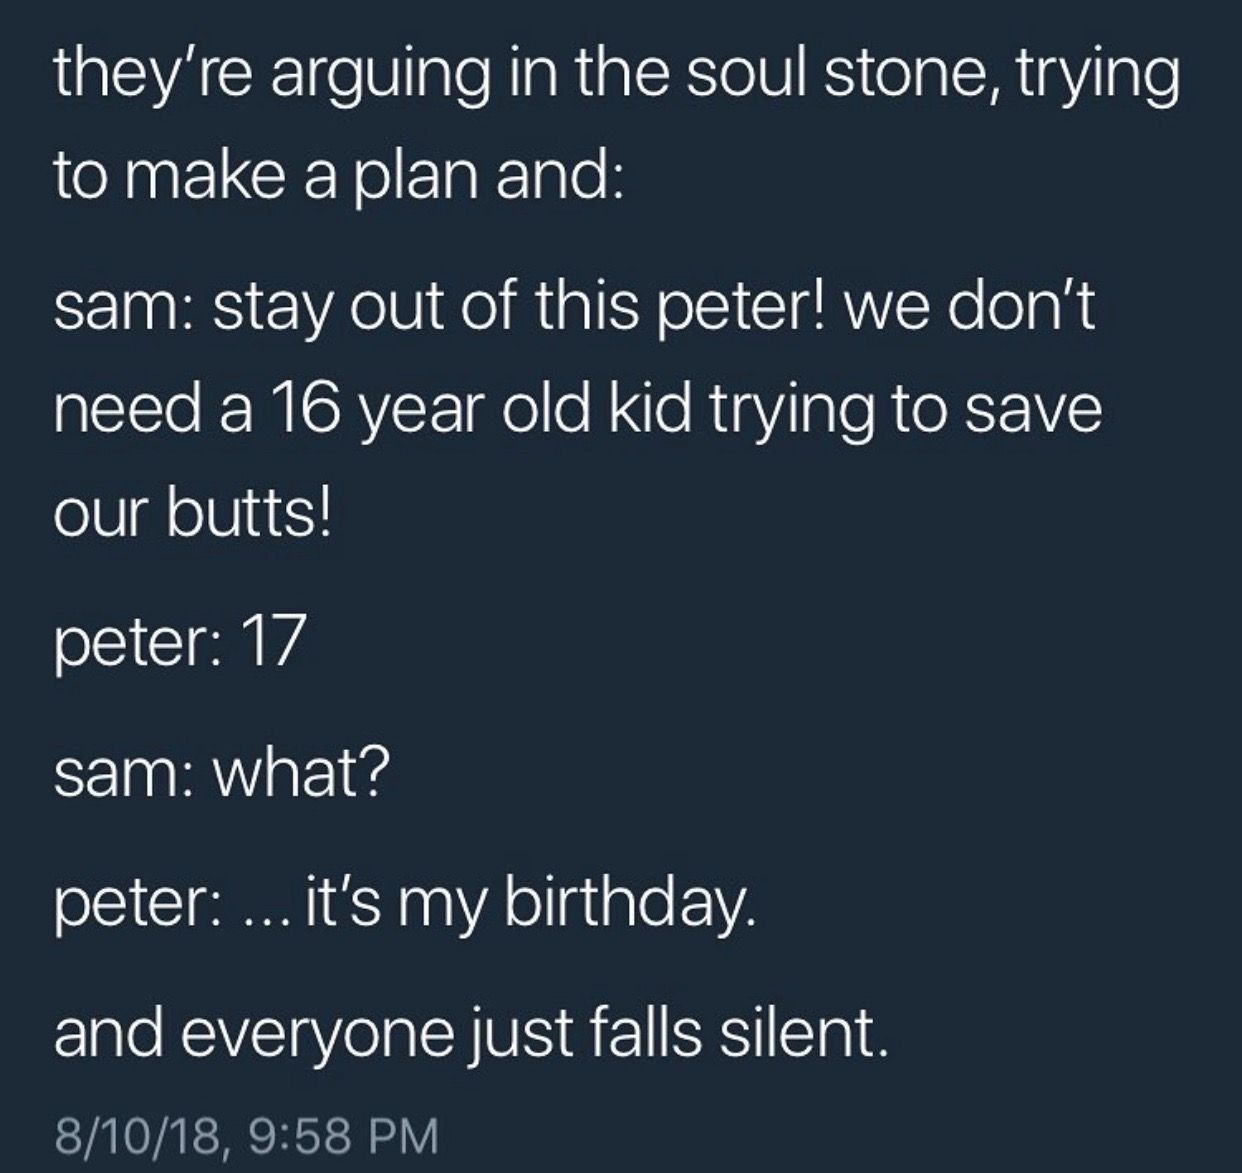 Aww   Peter's 17th birthday day in soul stone, this is not fair